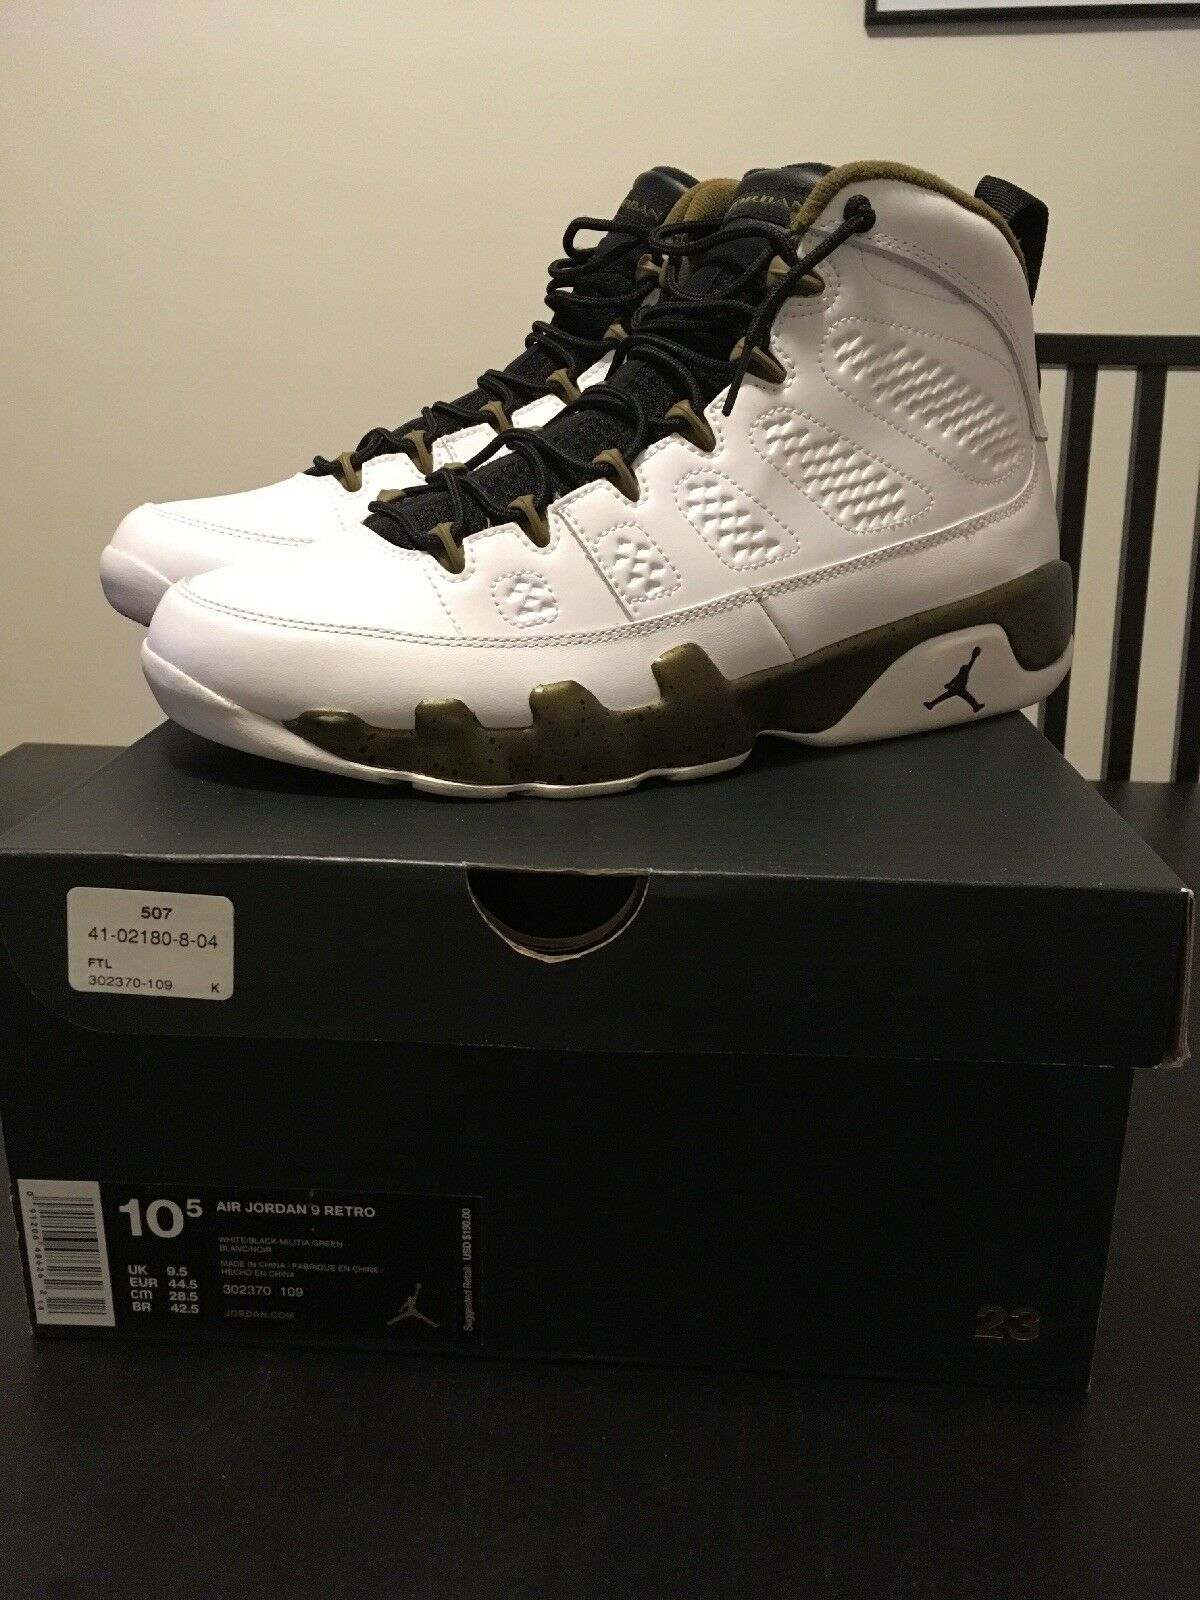 Jordan Retro 9 White/Black/Militia Green  Cheap and fashionable